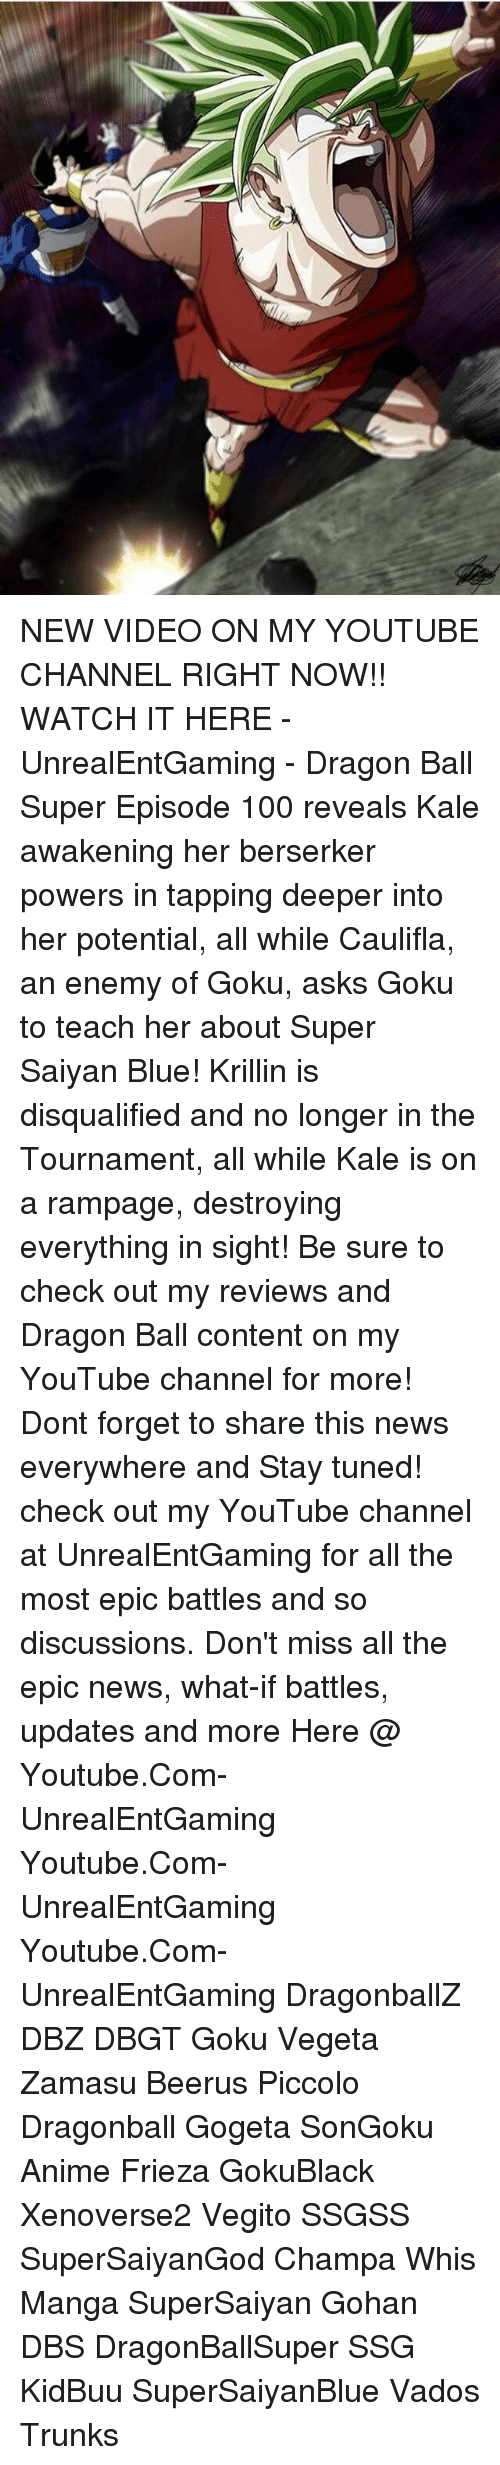 Anaconda, Anime, and Dragonball: NEW VIDEO ON MY YOUTUBE CHANNEL RIGHT NOW!! WATCH IT HERE - UnrealEntGaming - Dragon Ball Super Episode 100 reveals Kale awakening her berserker powers in tapping deeper into her potential, all while Caulifla, an enemy of Goku, asks Goku to teach her about Super Saiyan Blue! Krillin is disqualified and no longer in the Tournament, all while Kale is on a rampage, destroying everything in sight! Be sure to check out my reviews and Dragon Ball content on my YouTube channel for more! Dont forget to share this news everywhere and Stay tuned! check out my YouTube channel at UnrealEntGaming for all the most epic battles and so discussions. Don't miss all the epic news, what-if battles, updates and more Here @ Youtube.Com-UnrealEntGaming Youtube.Com-UnrealEntGaming Youtube.Com-UnrealEntGaming DragonballZ DBZ DBGT Goku Vegeta Zamasu Beerus Piccolo Dragonball Gogeta SonGoku Anime Frieza GokuBlack Xenoverse2 Vegito SSGSS SuperSaiyanGod Champa Whis Manga SuperSaiyan Gohan DBS DragonBallSuper SSG KidBuu SuperSaiyanBlue Vados Trunks